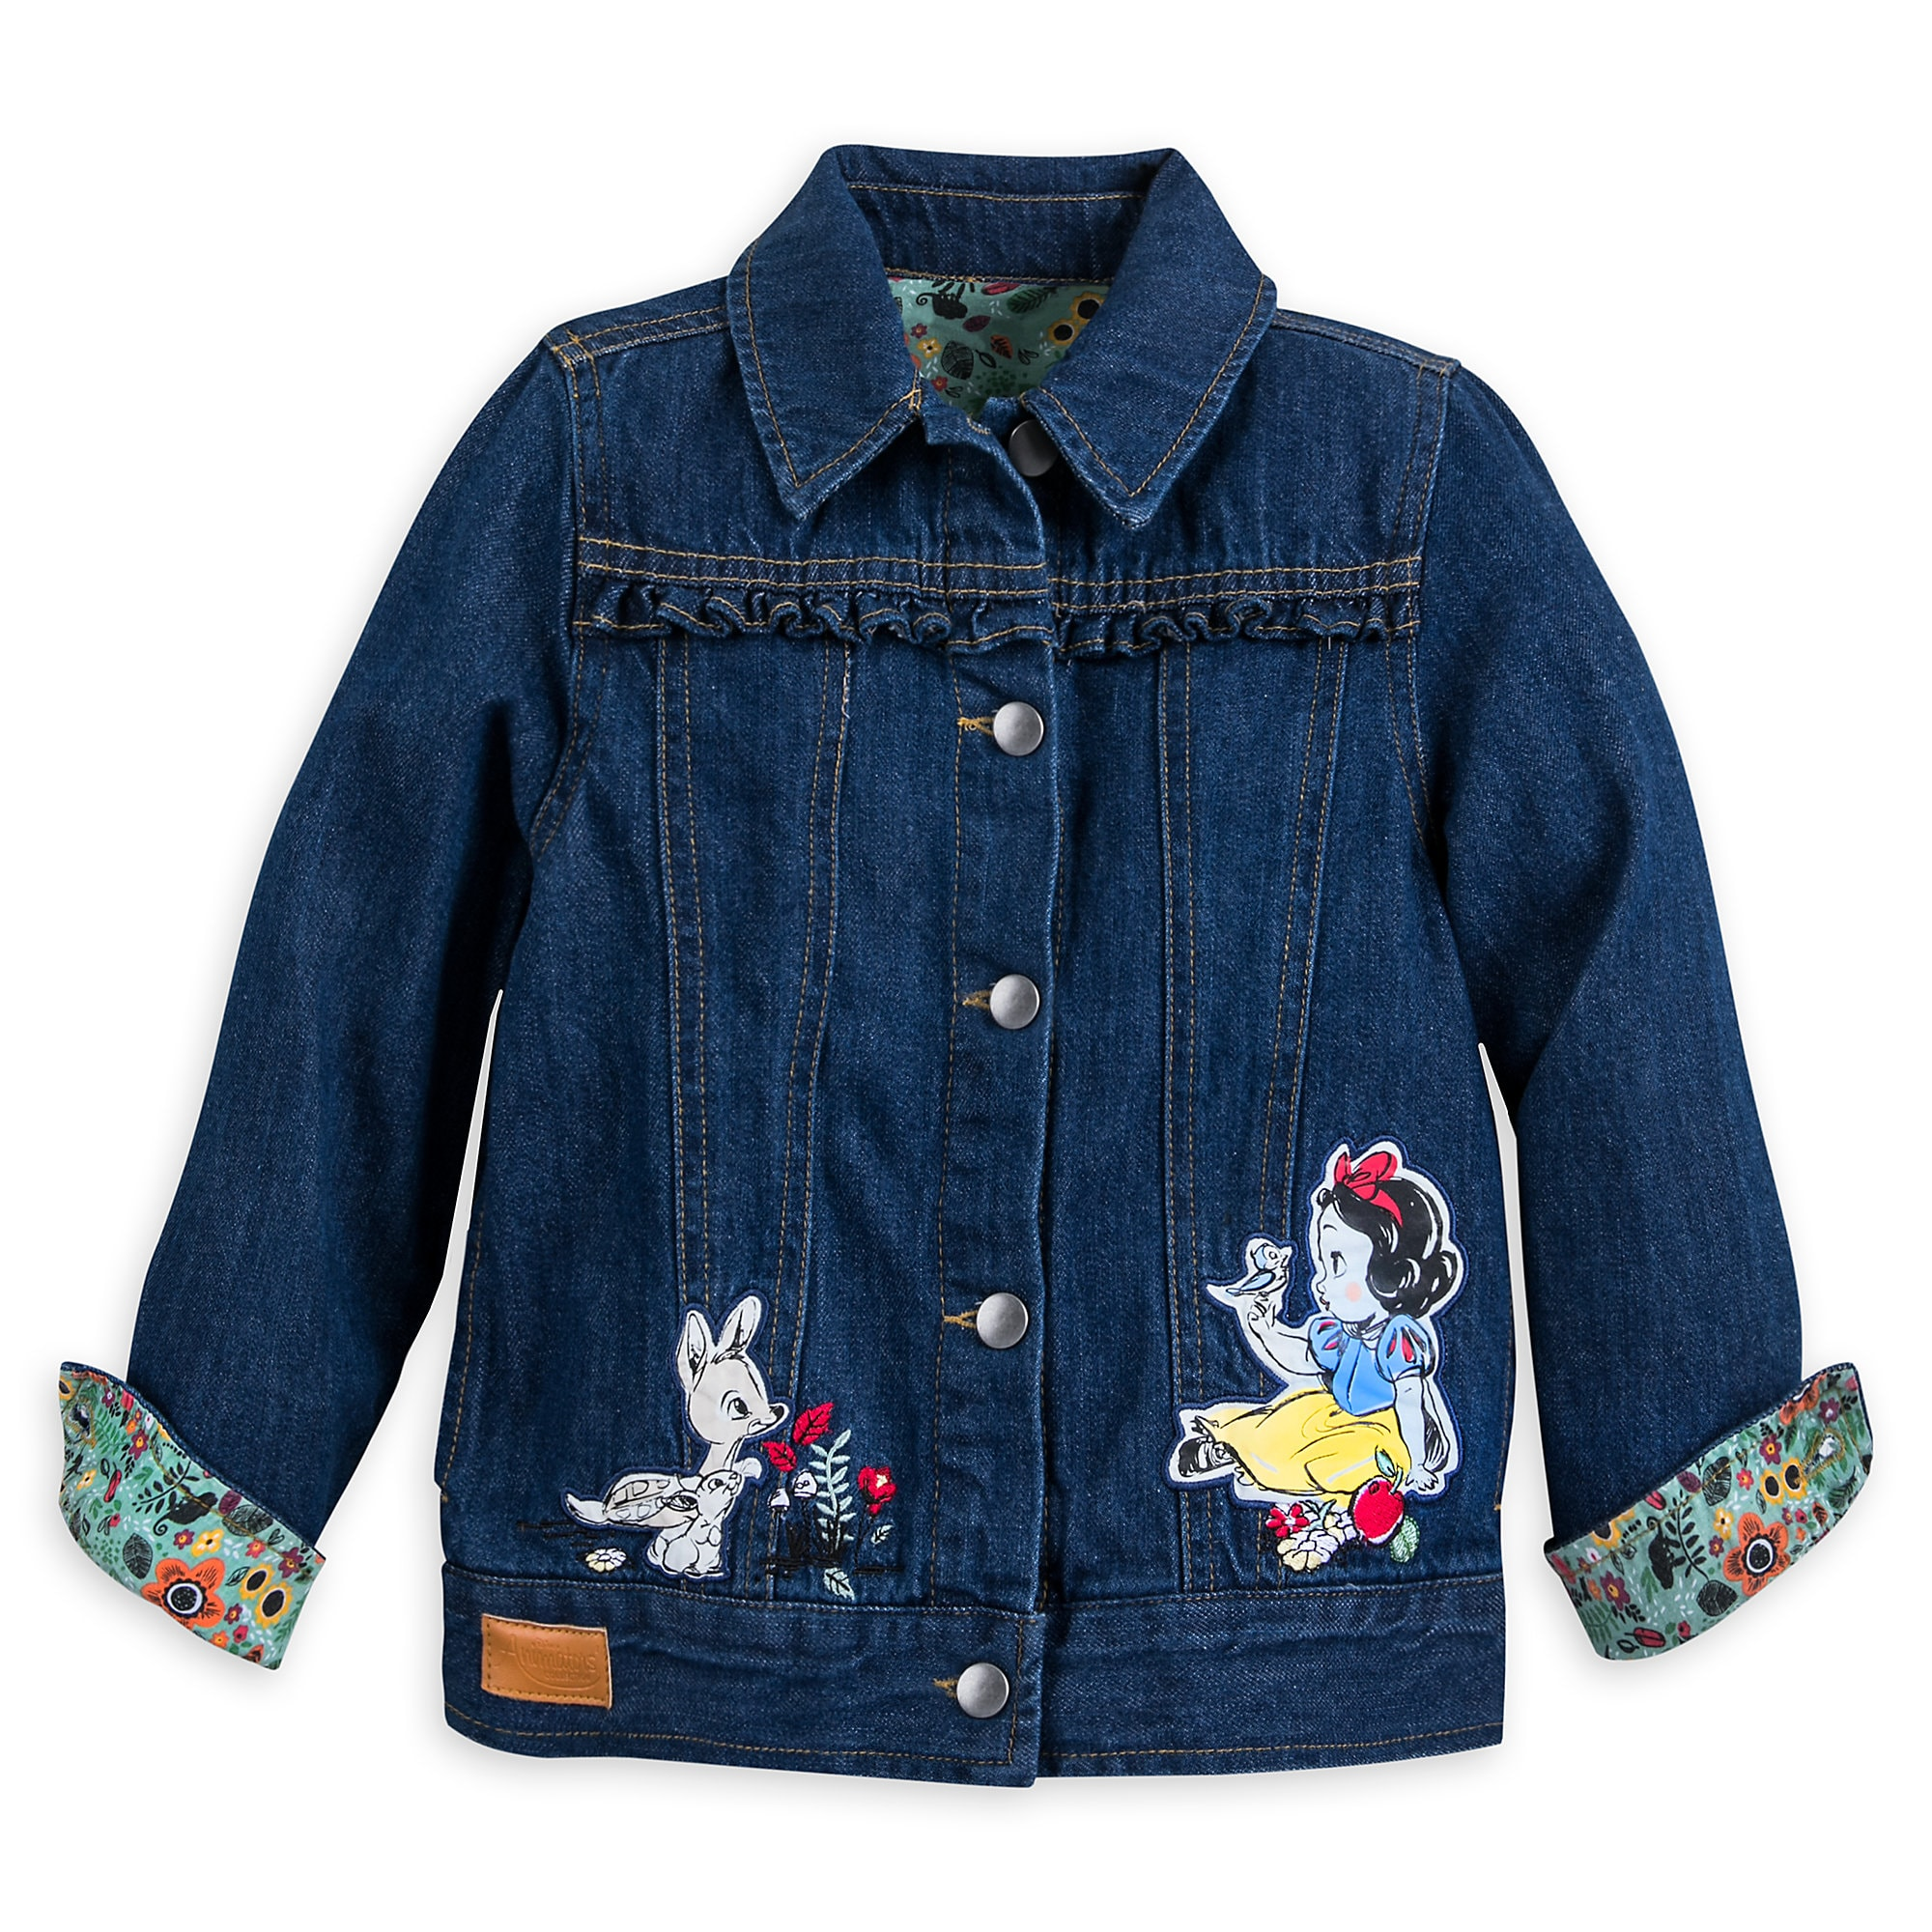 Snow White Denim Jacket for Girls - Disney Animators' Collection